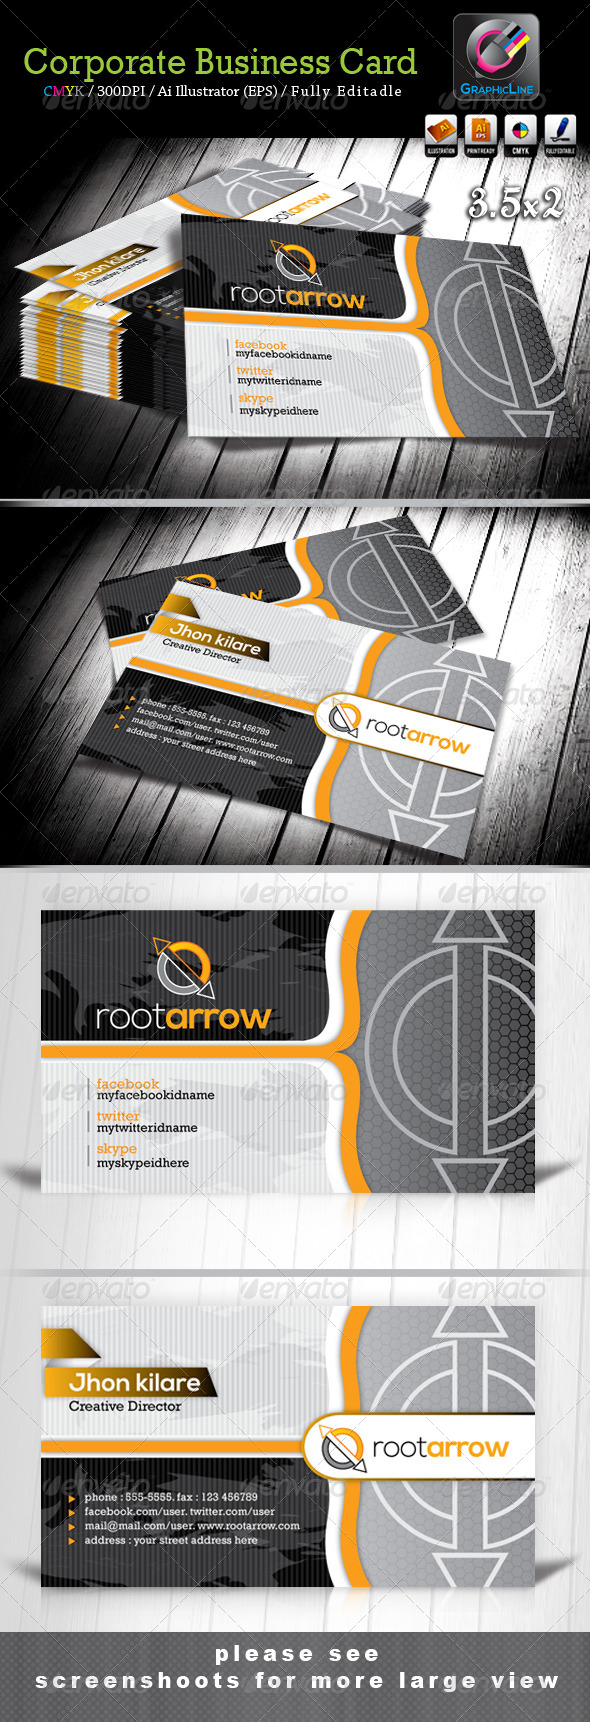 Root Arrow Corporate Business Card - Corporate Business Cards